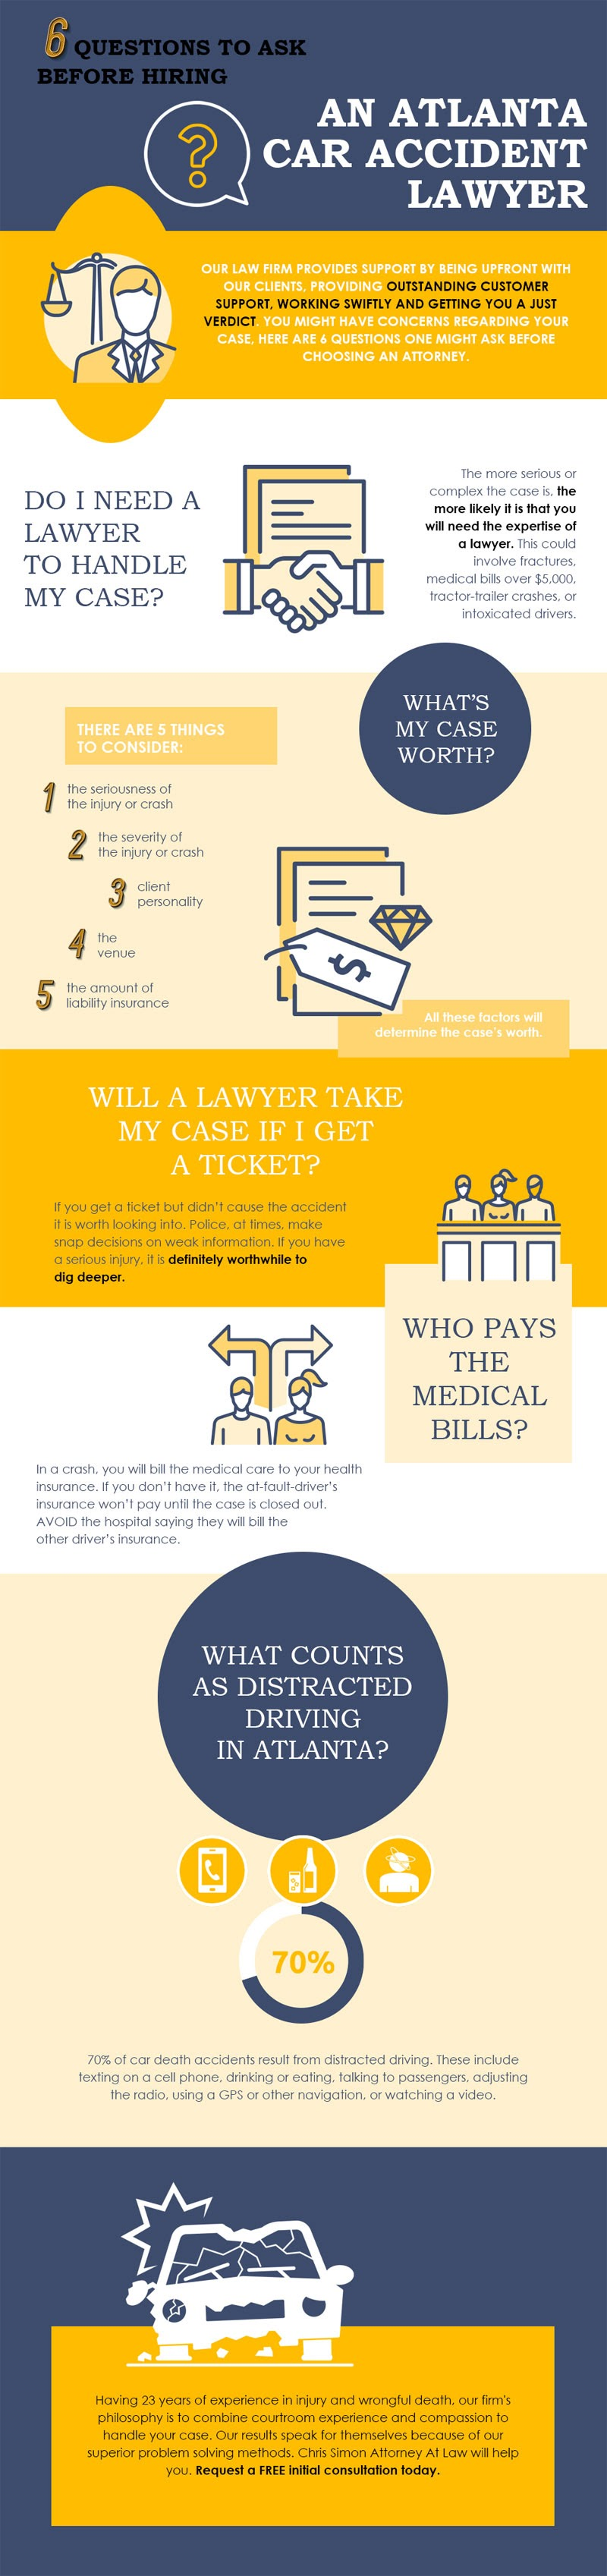 6 Questions to Ask Before Hiring an Atlanta Car Accident Lawyer #infographic